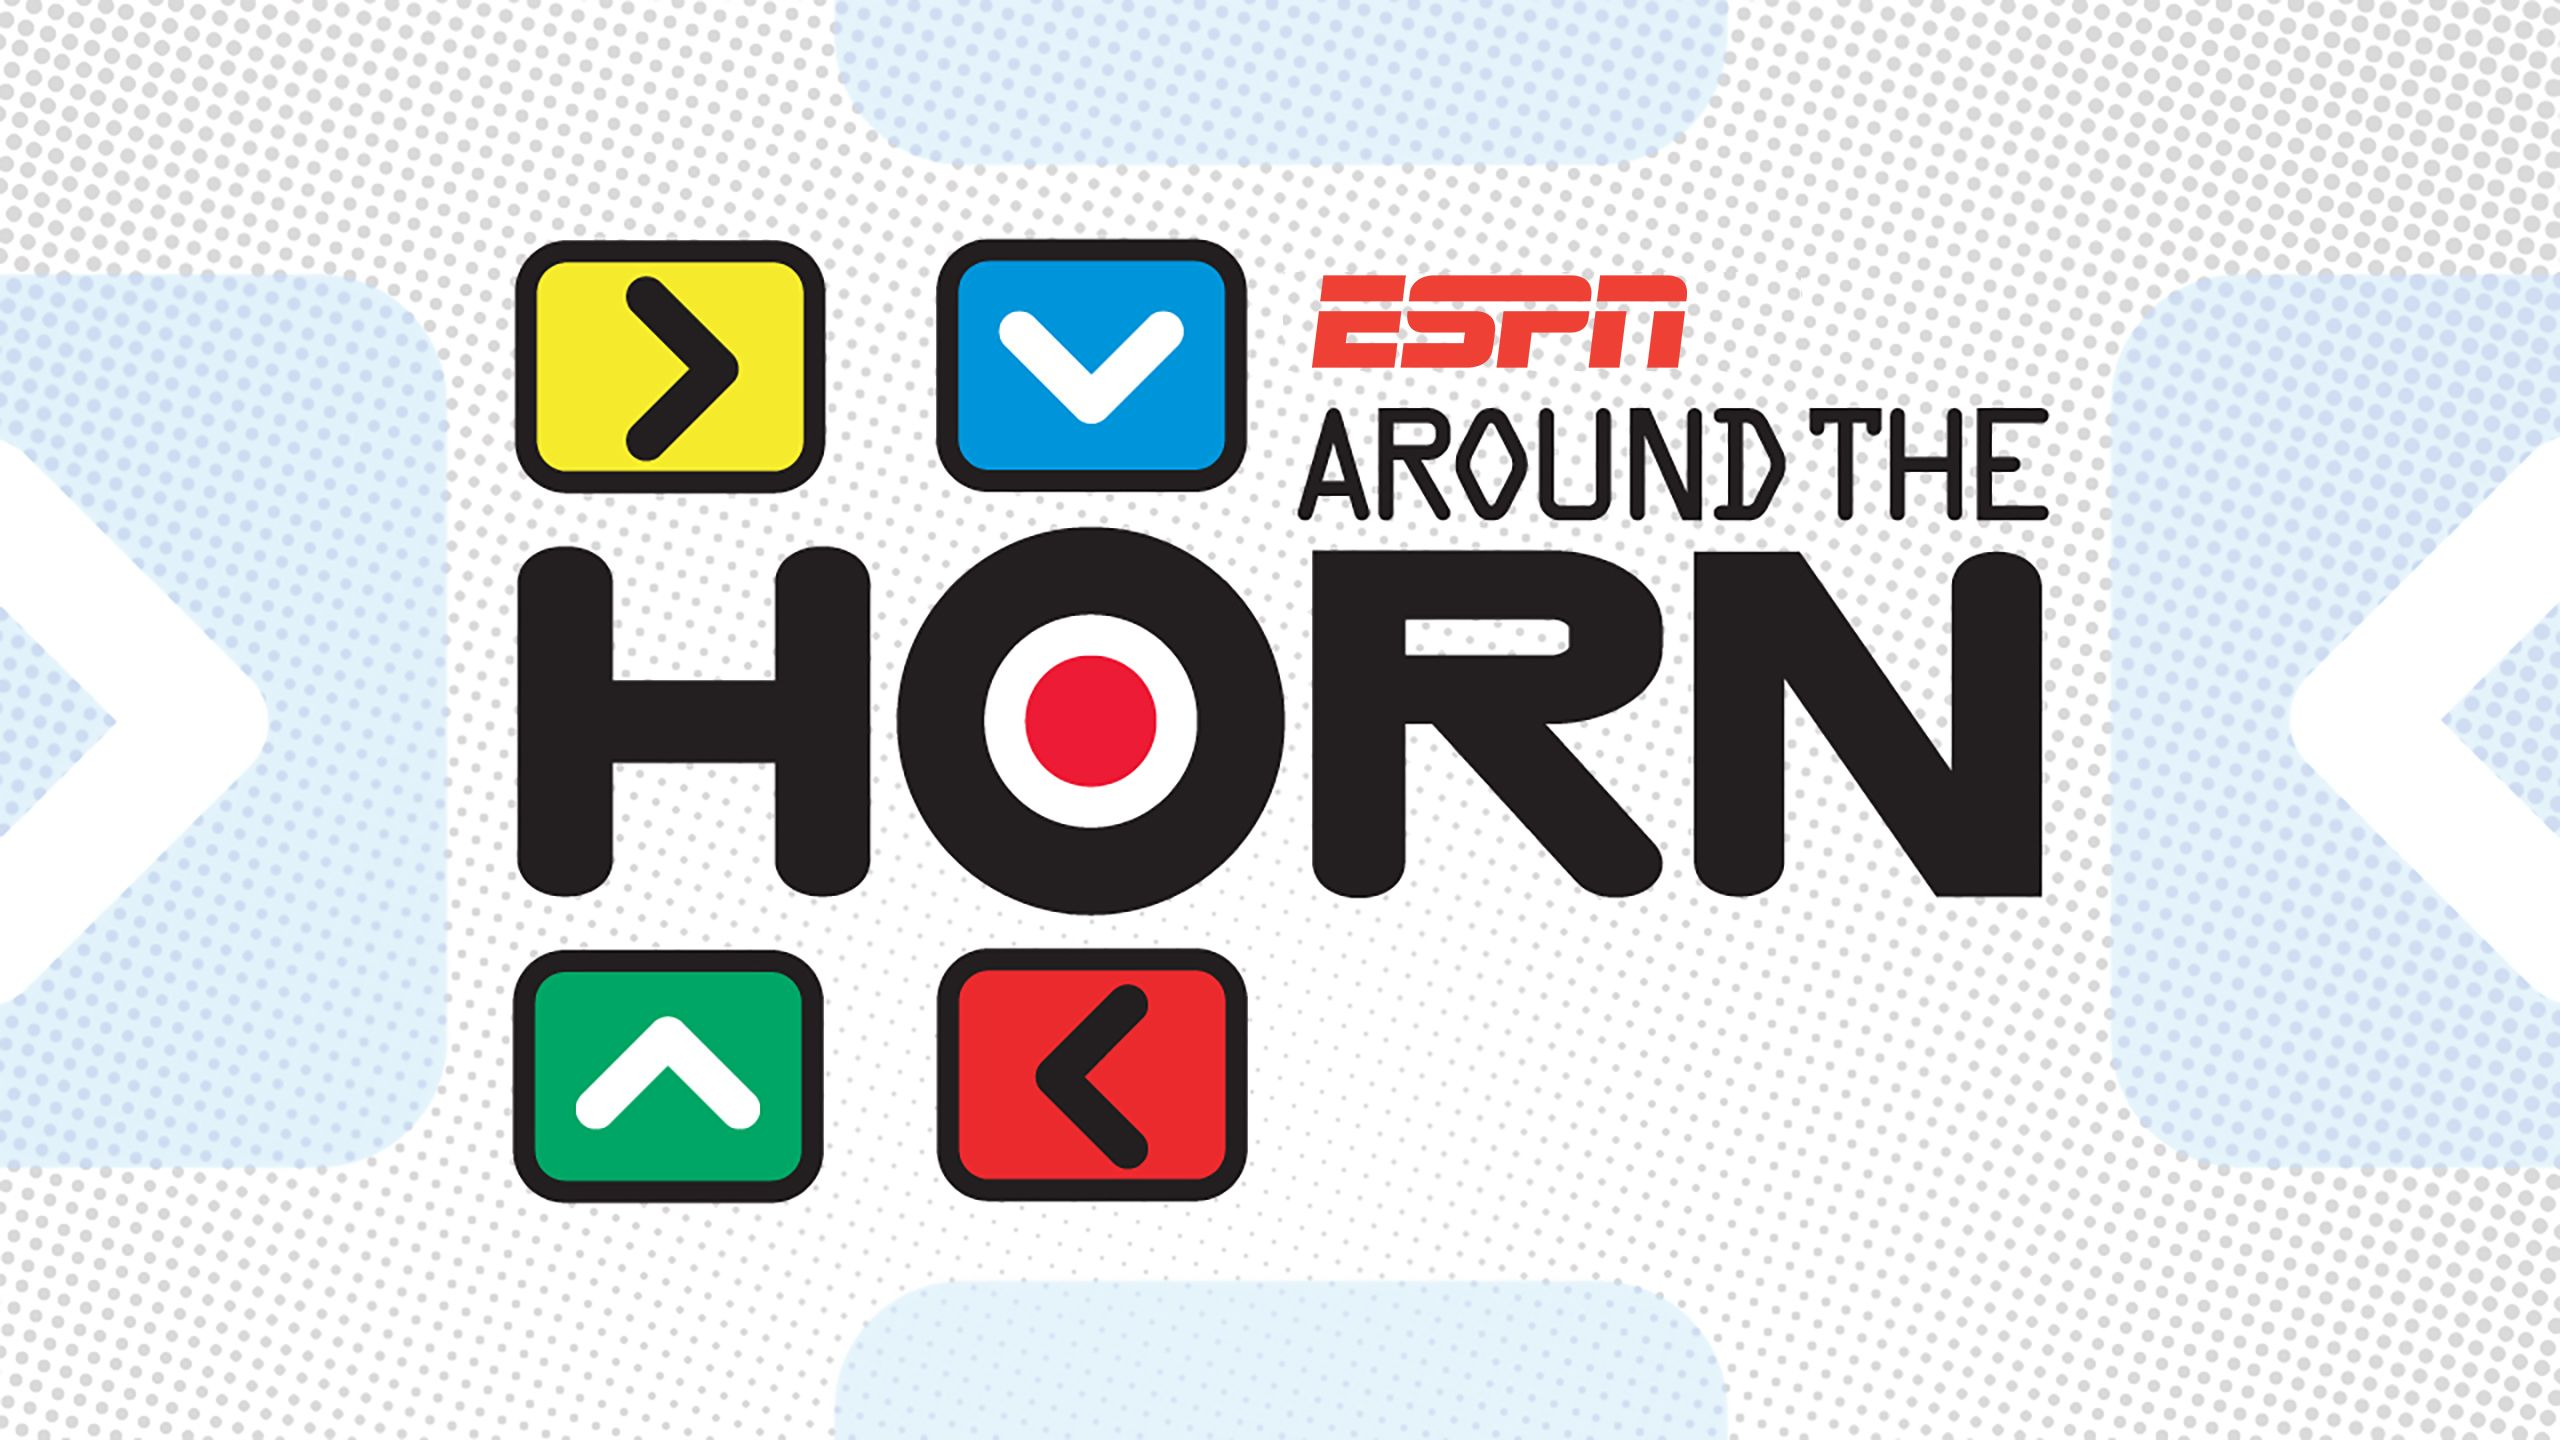 Tue, 11/21 - Around The Horn